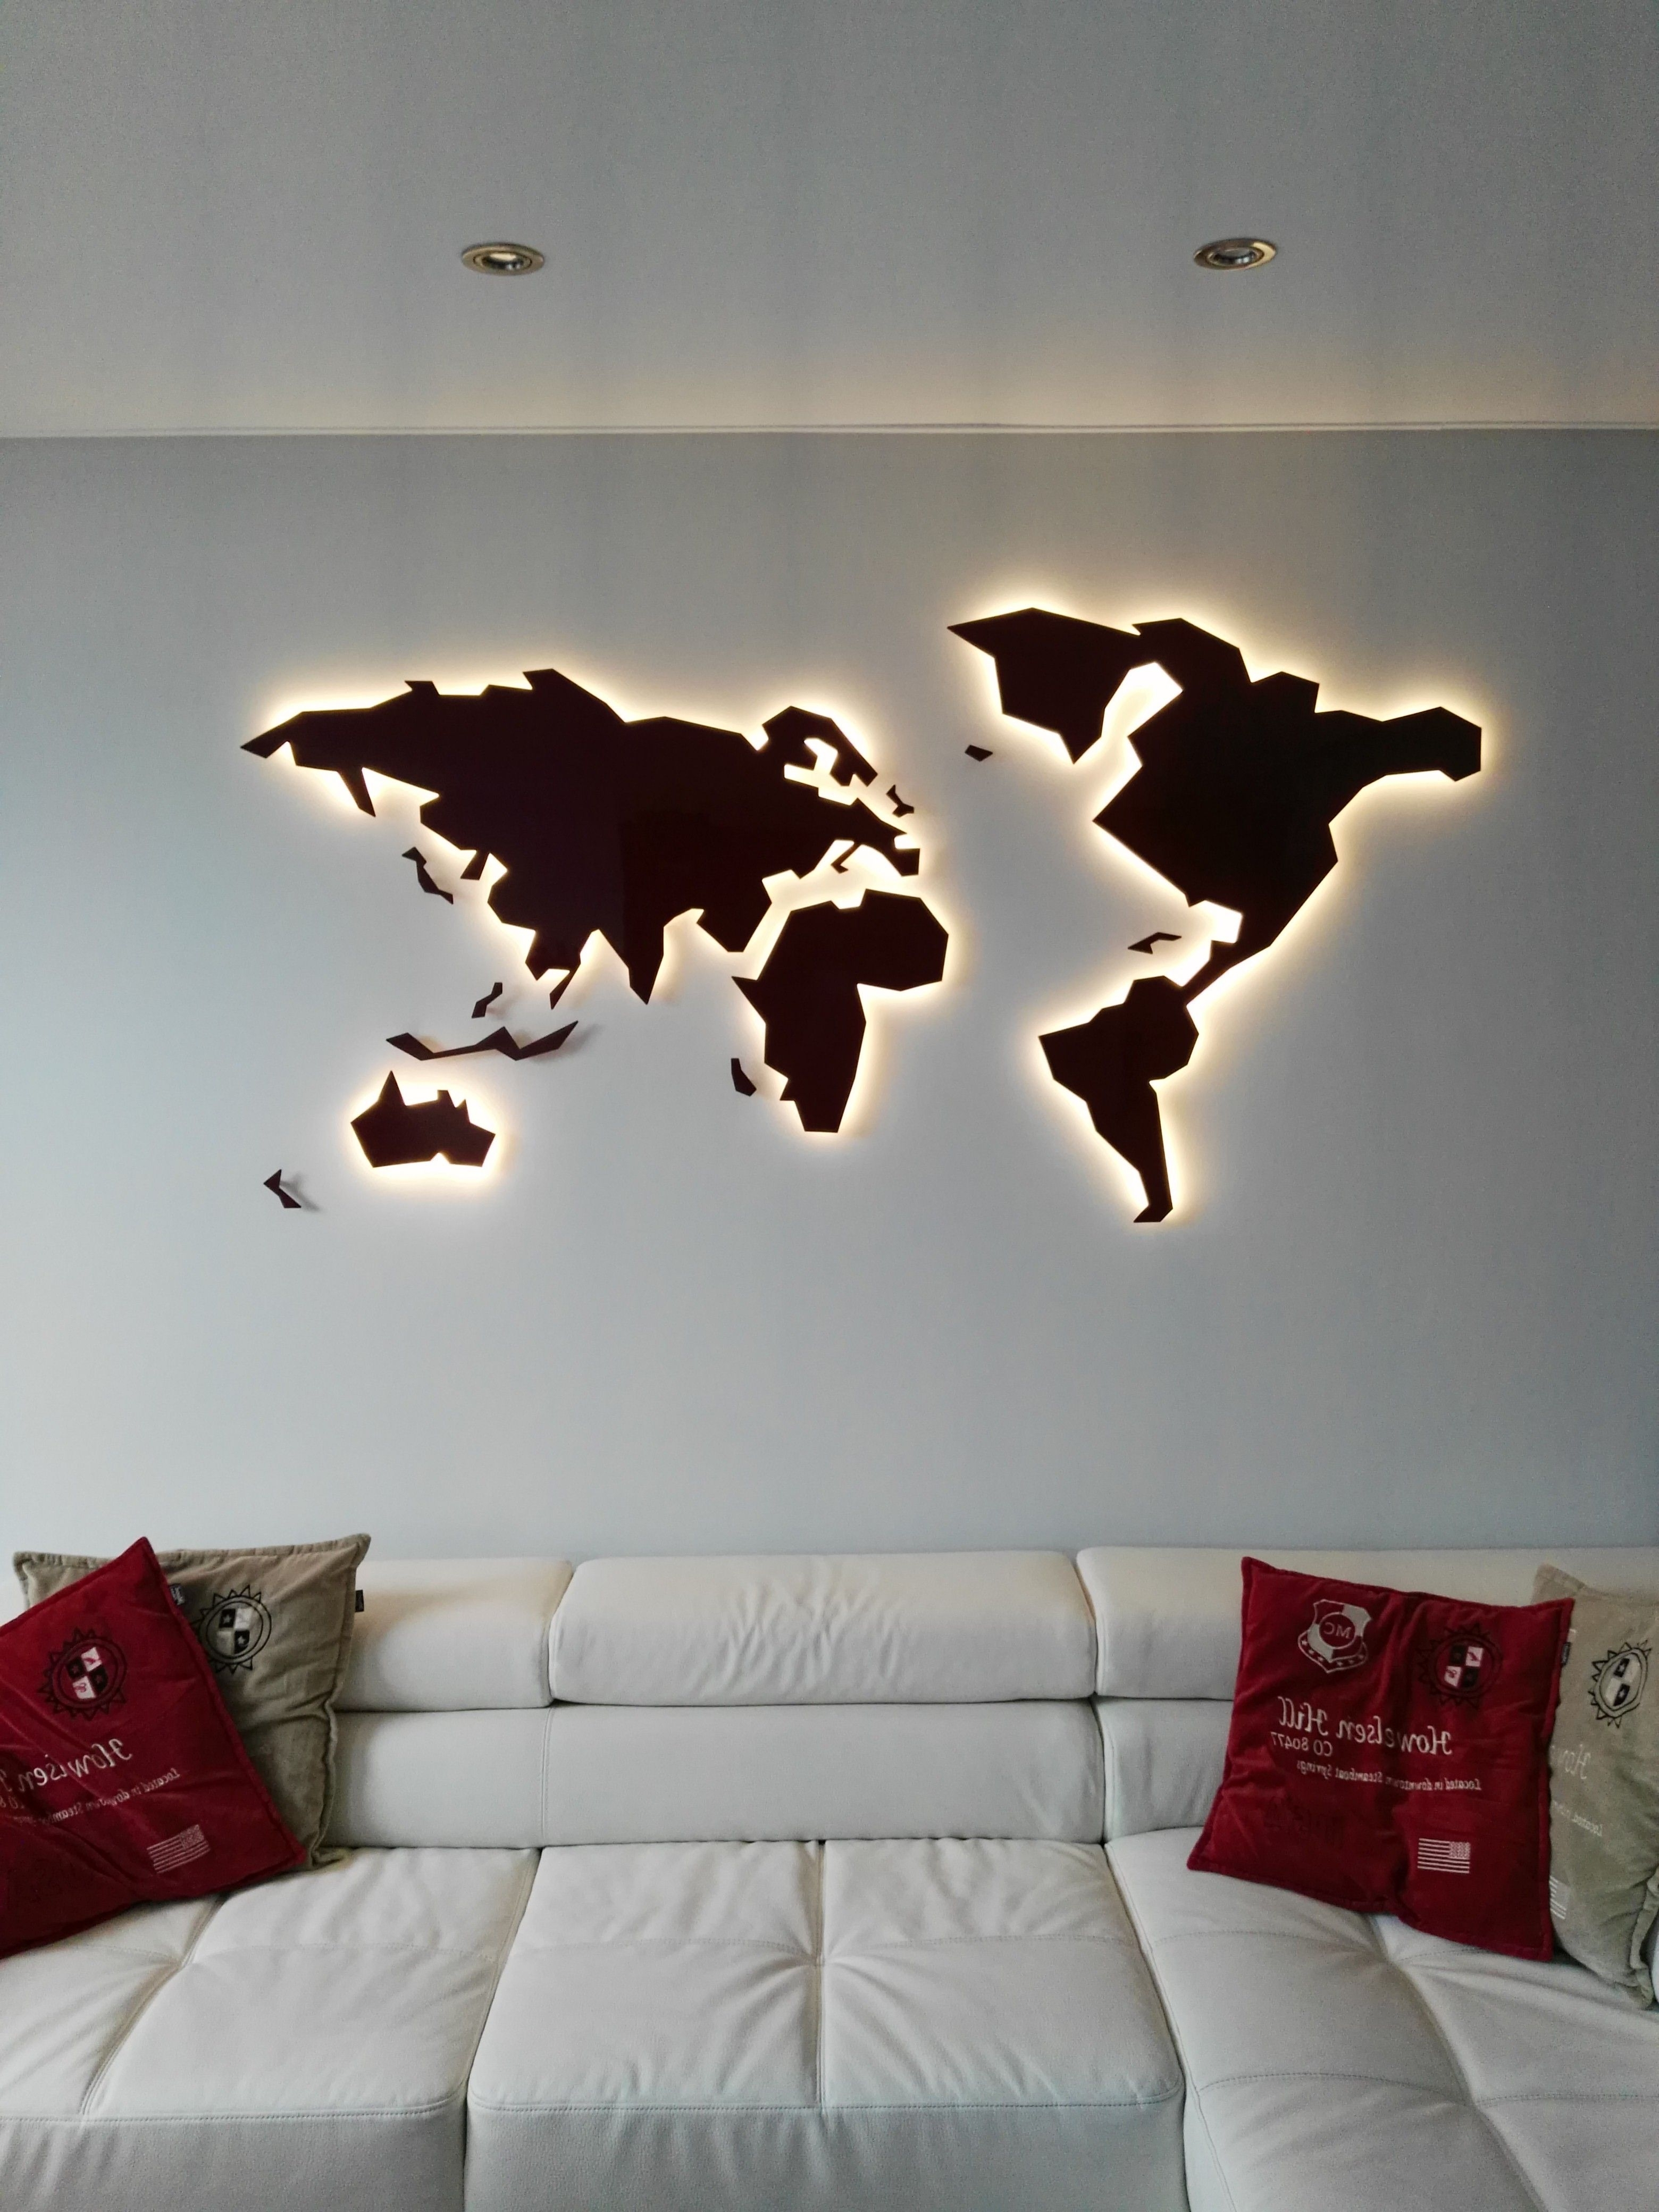 2017 Wall Art In Steel Geomundi World Maps Made In Atelier Peter In Map Of The World Wall Art (View 14 of 15)